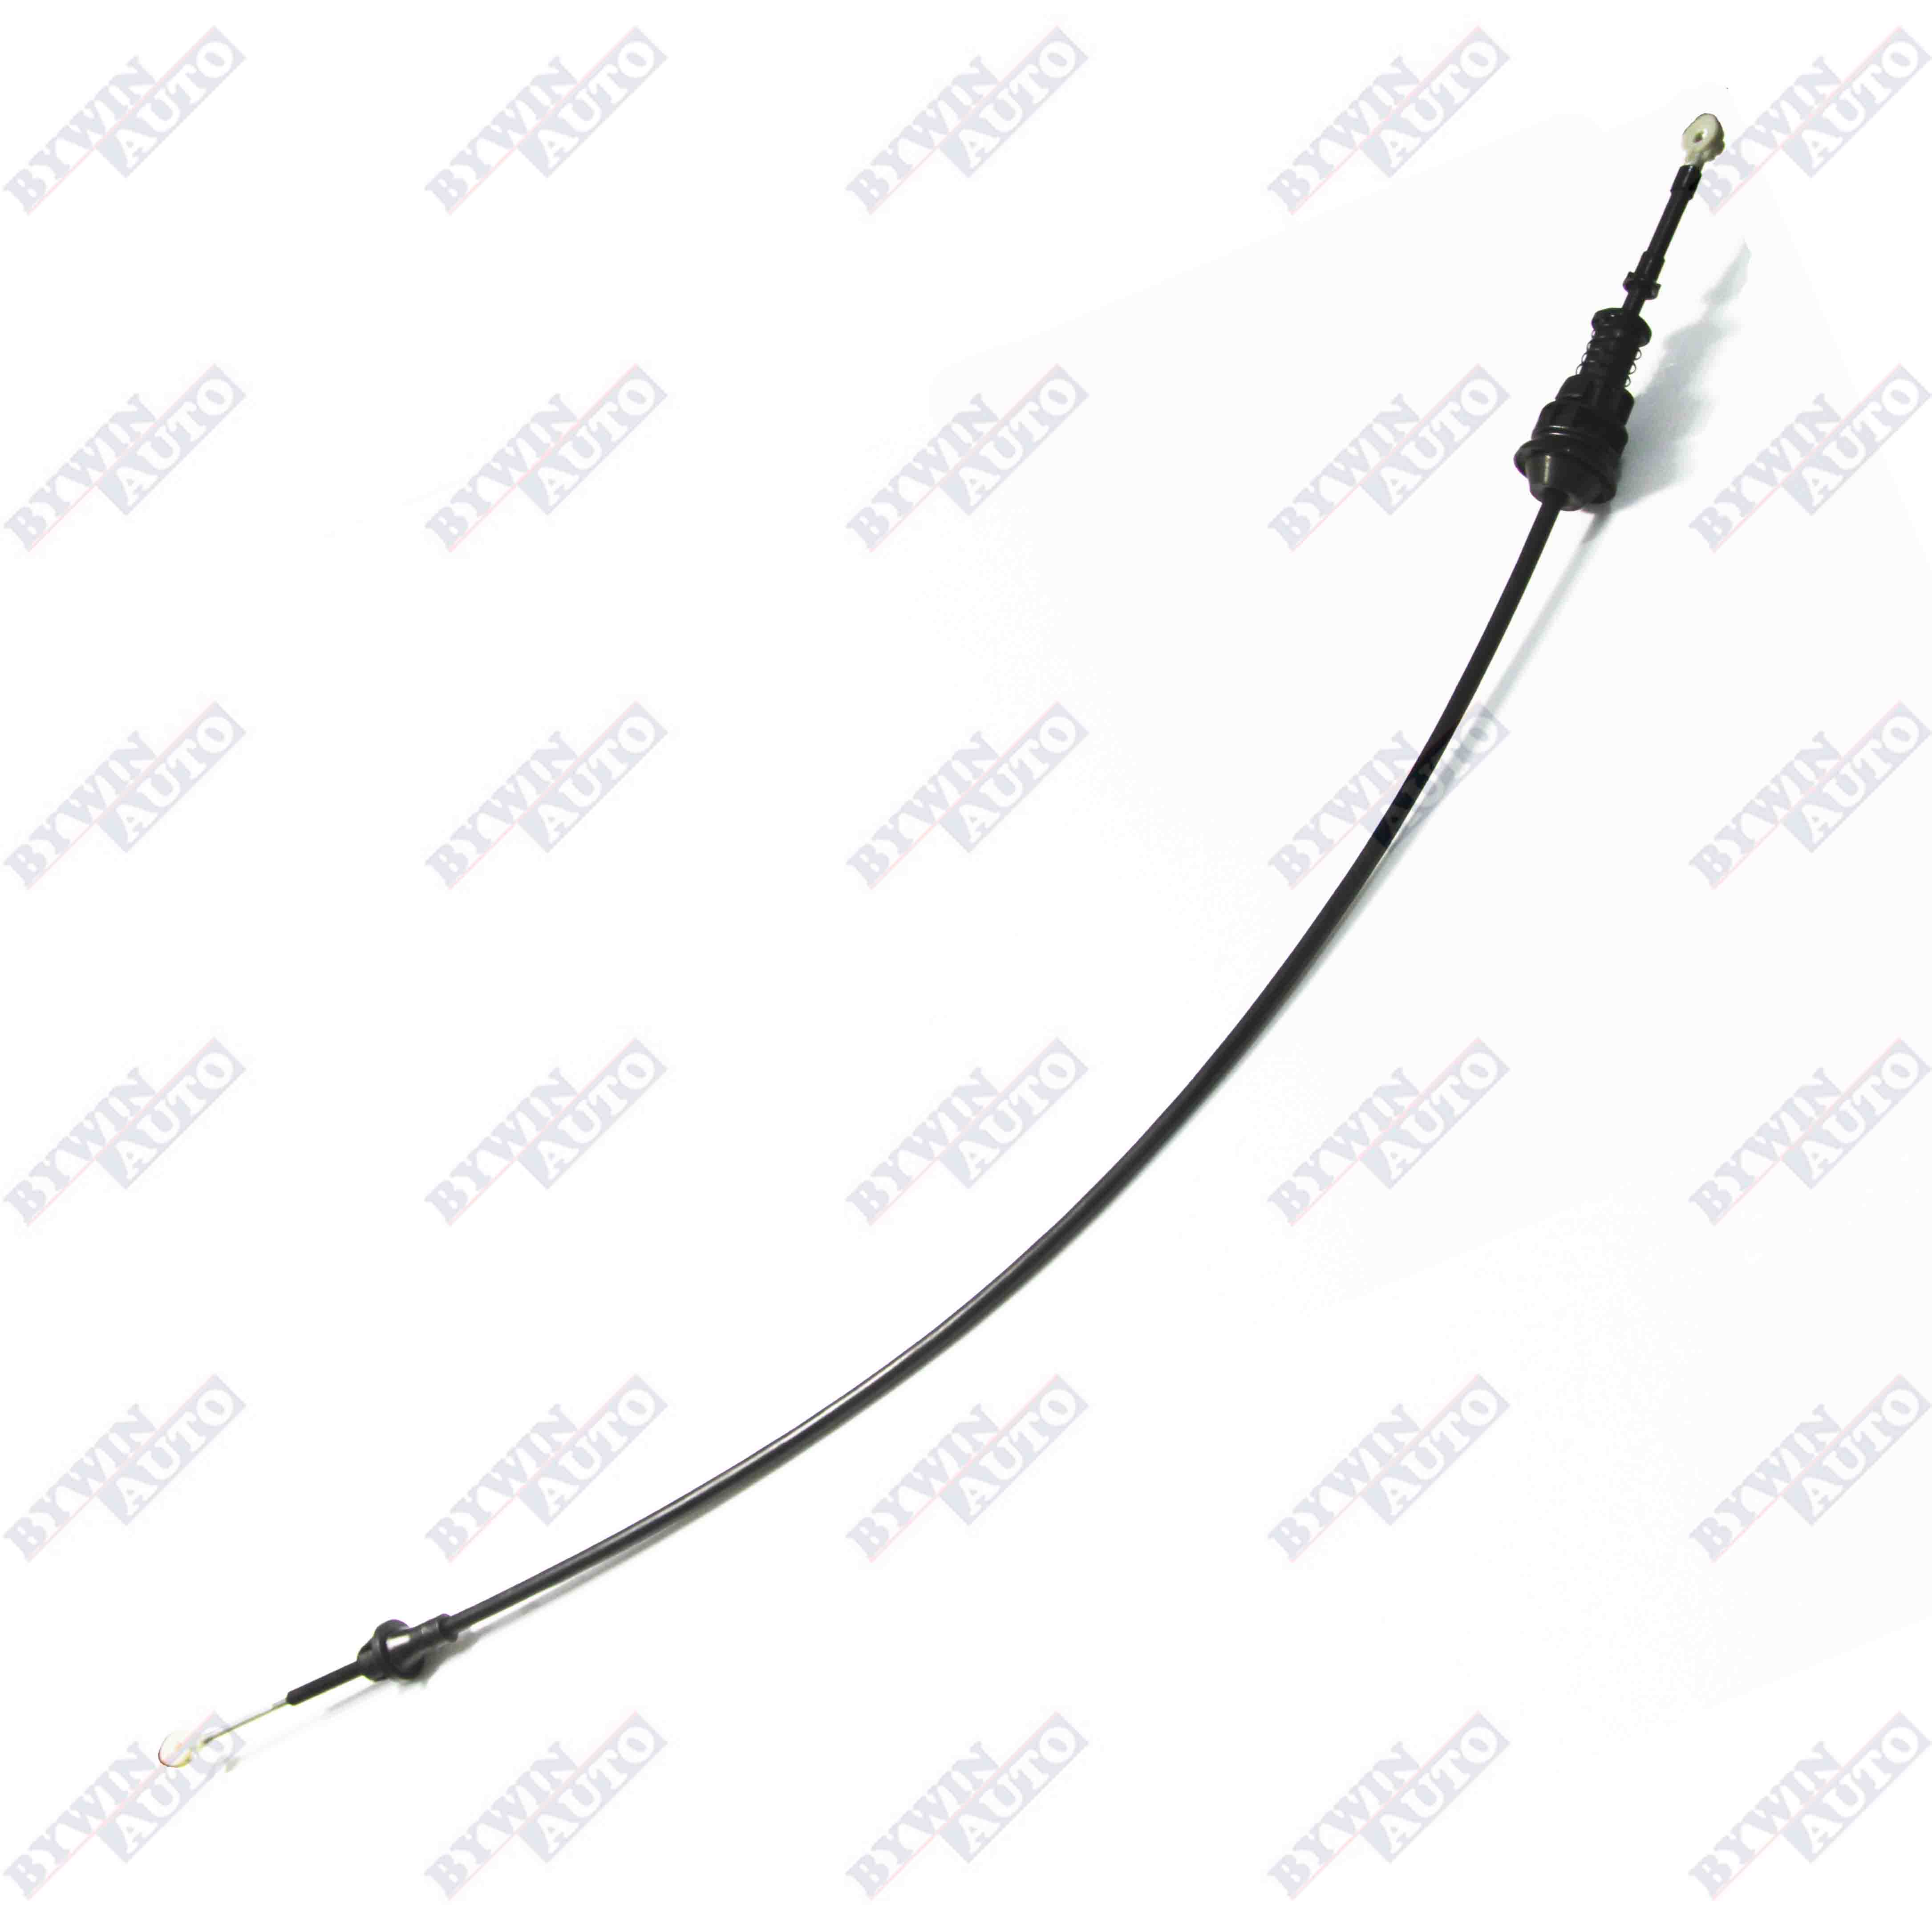 52077532AD AUTOMATIC TRANSMISSION Shift CABLE For CHEROKEE